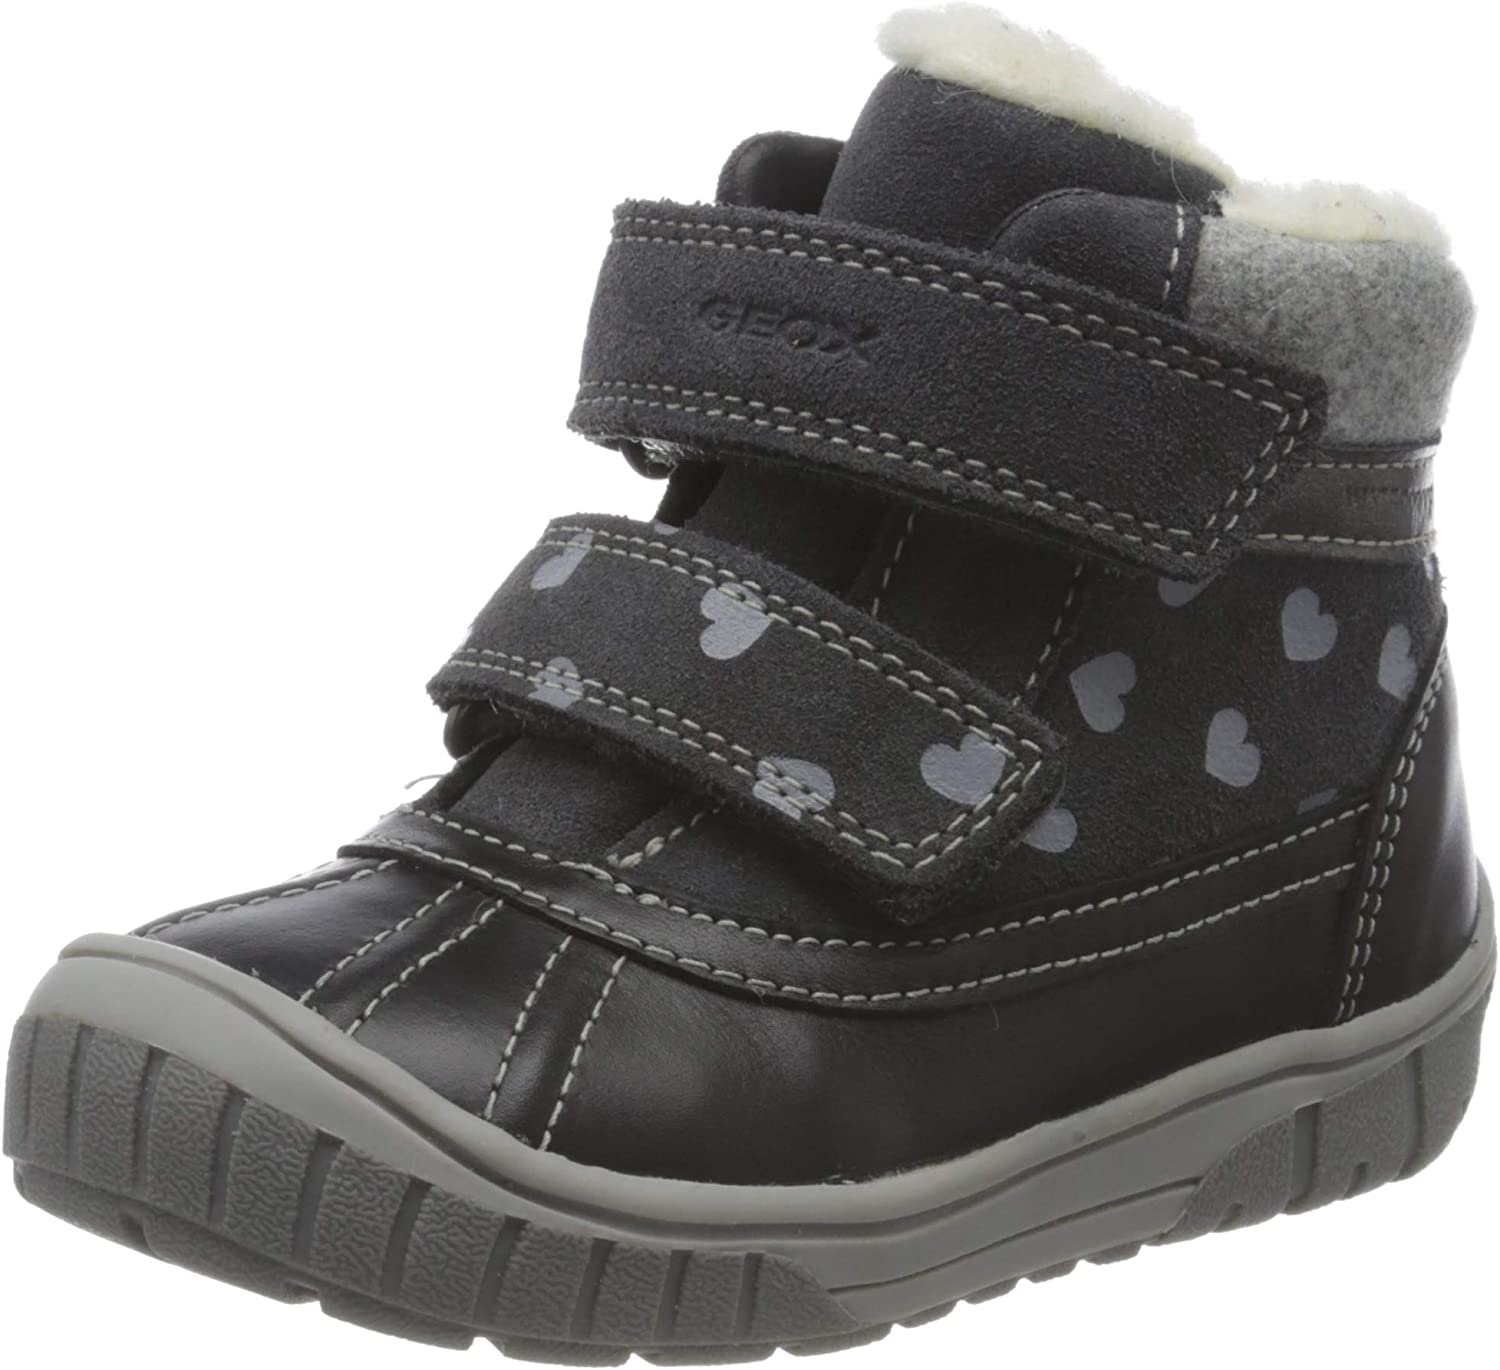 Geox 5% OFF Unisex-Child Rain Ankle Max 71% OFF Boot